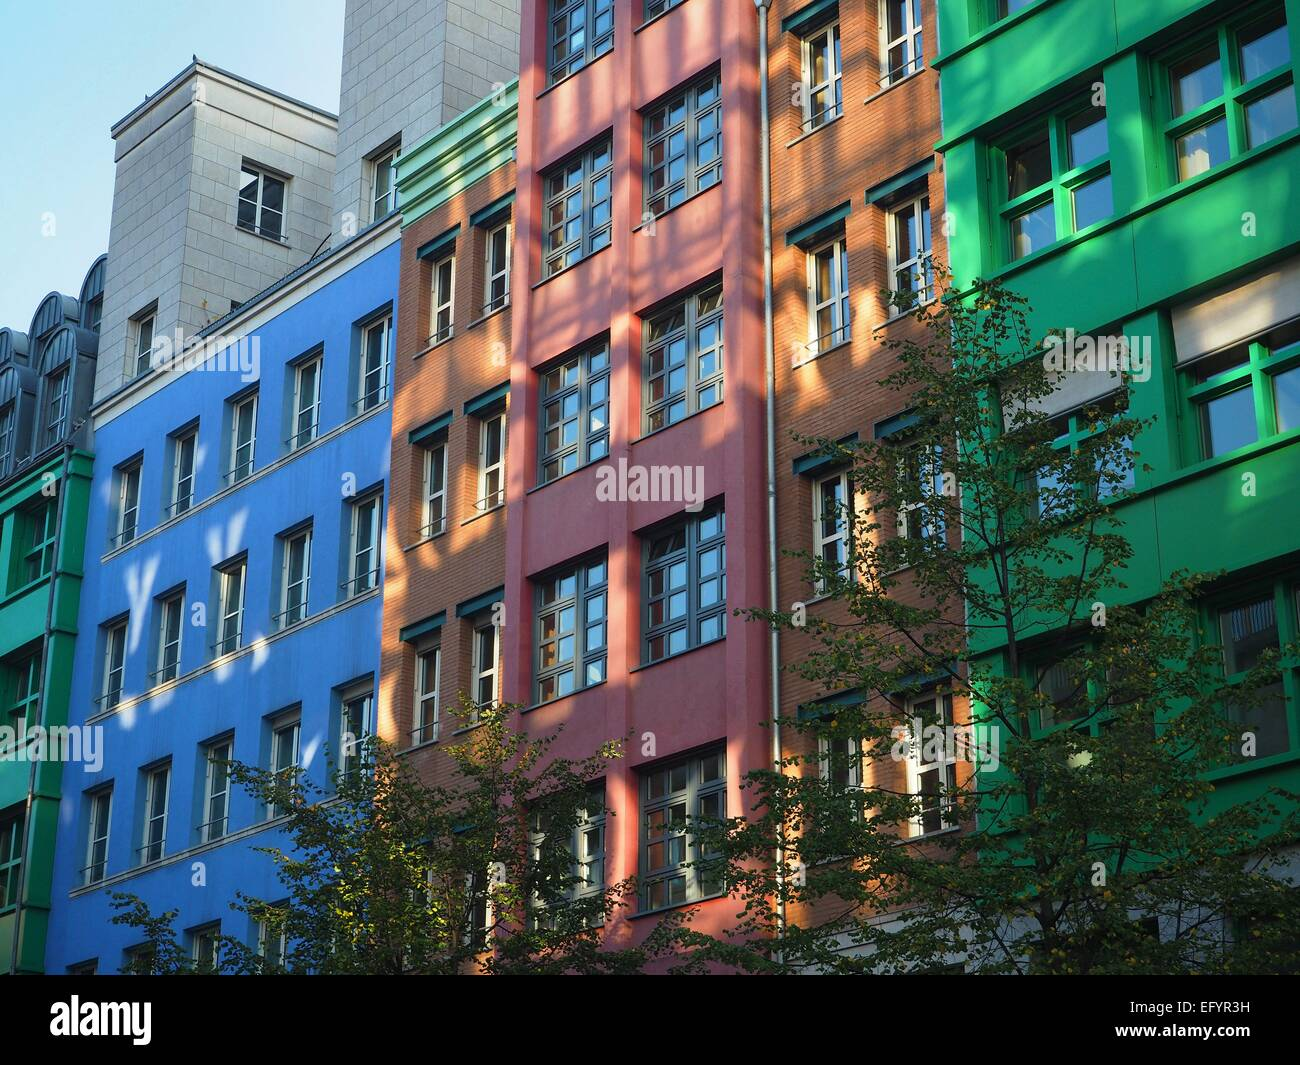 Modern colorfull buildings - containing flats and offices - are seen in Berlin Mitte on October 05, 2014. Photo: Stock Photo